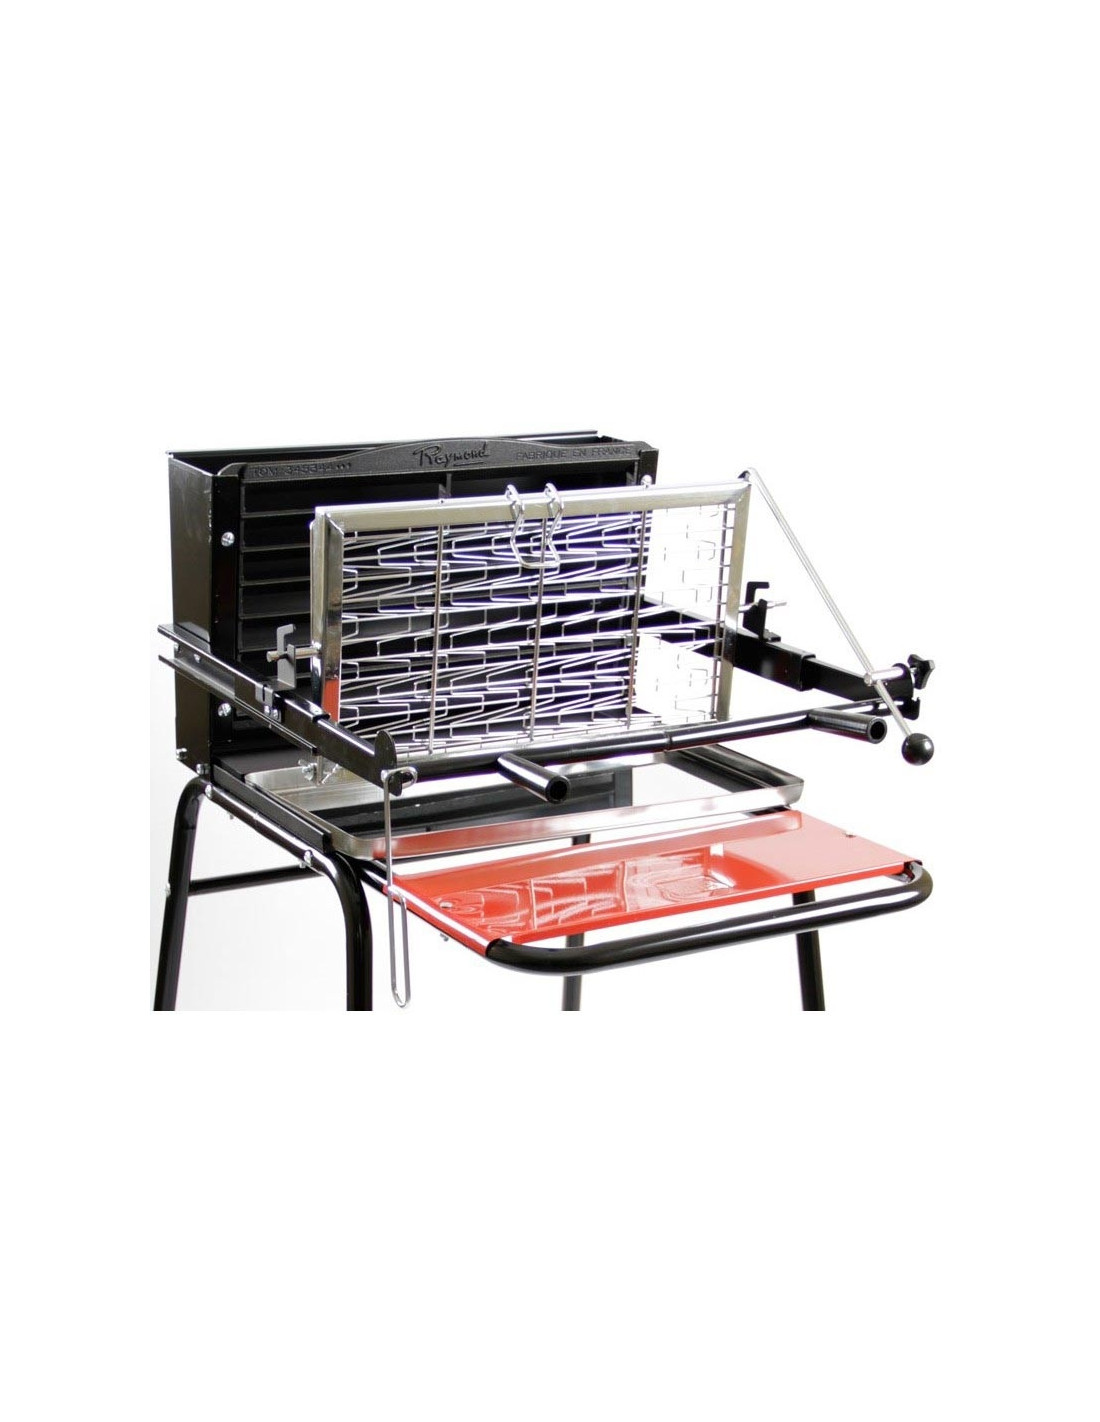 Barbecue raymond cuisson vertical somagic - Barbecue vertical gaz ...